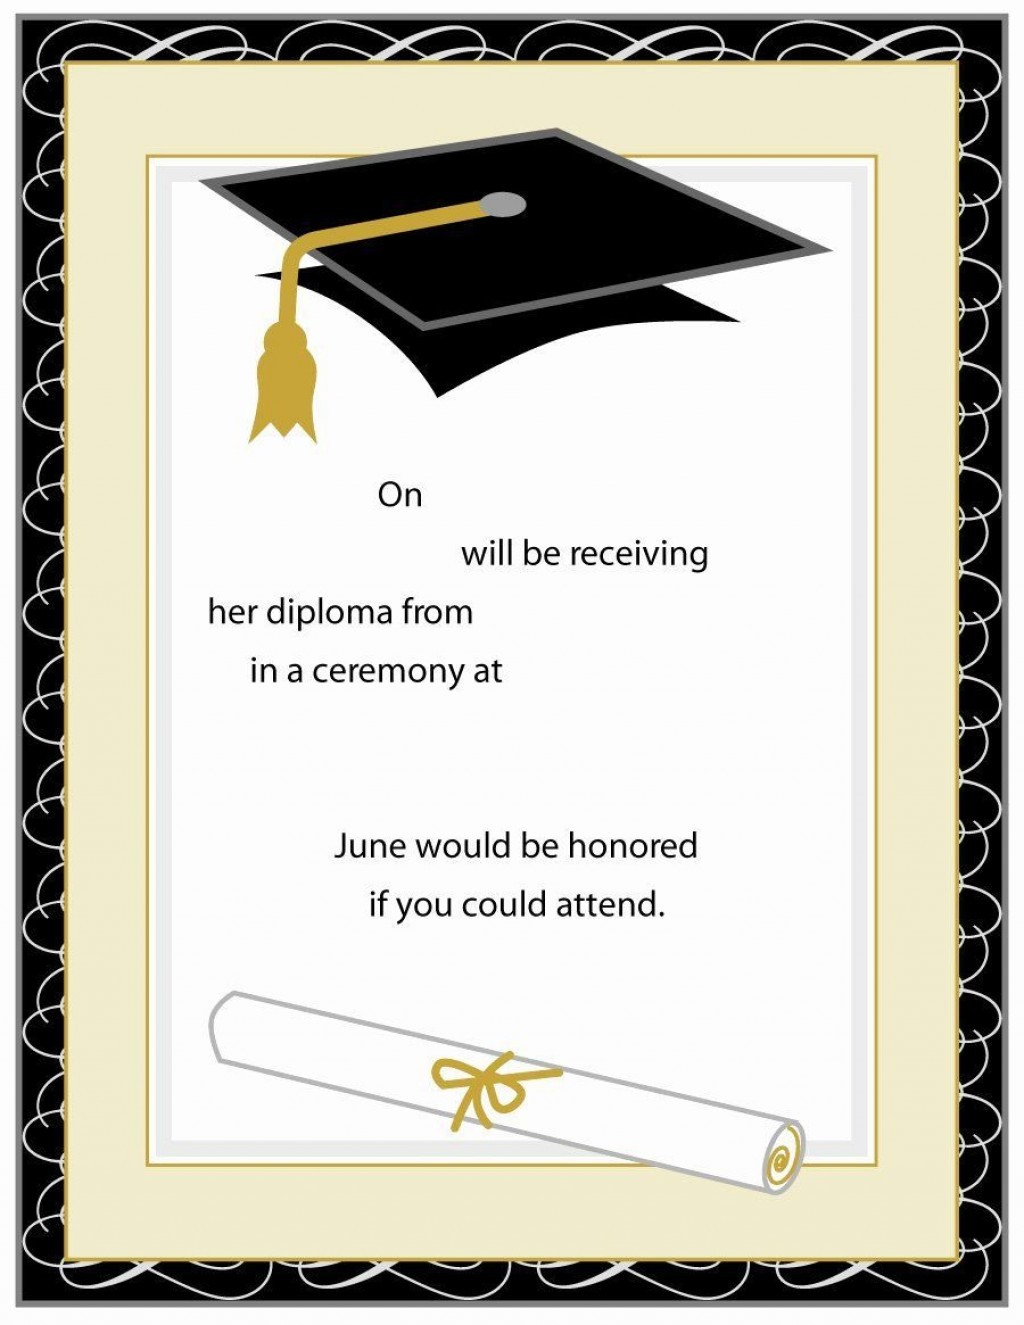 007 Surprising Free Graduation Announcement Template Example  Invitation Microsoft Word Printable KindergartenLarge